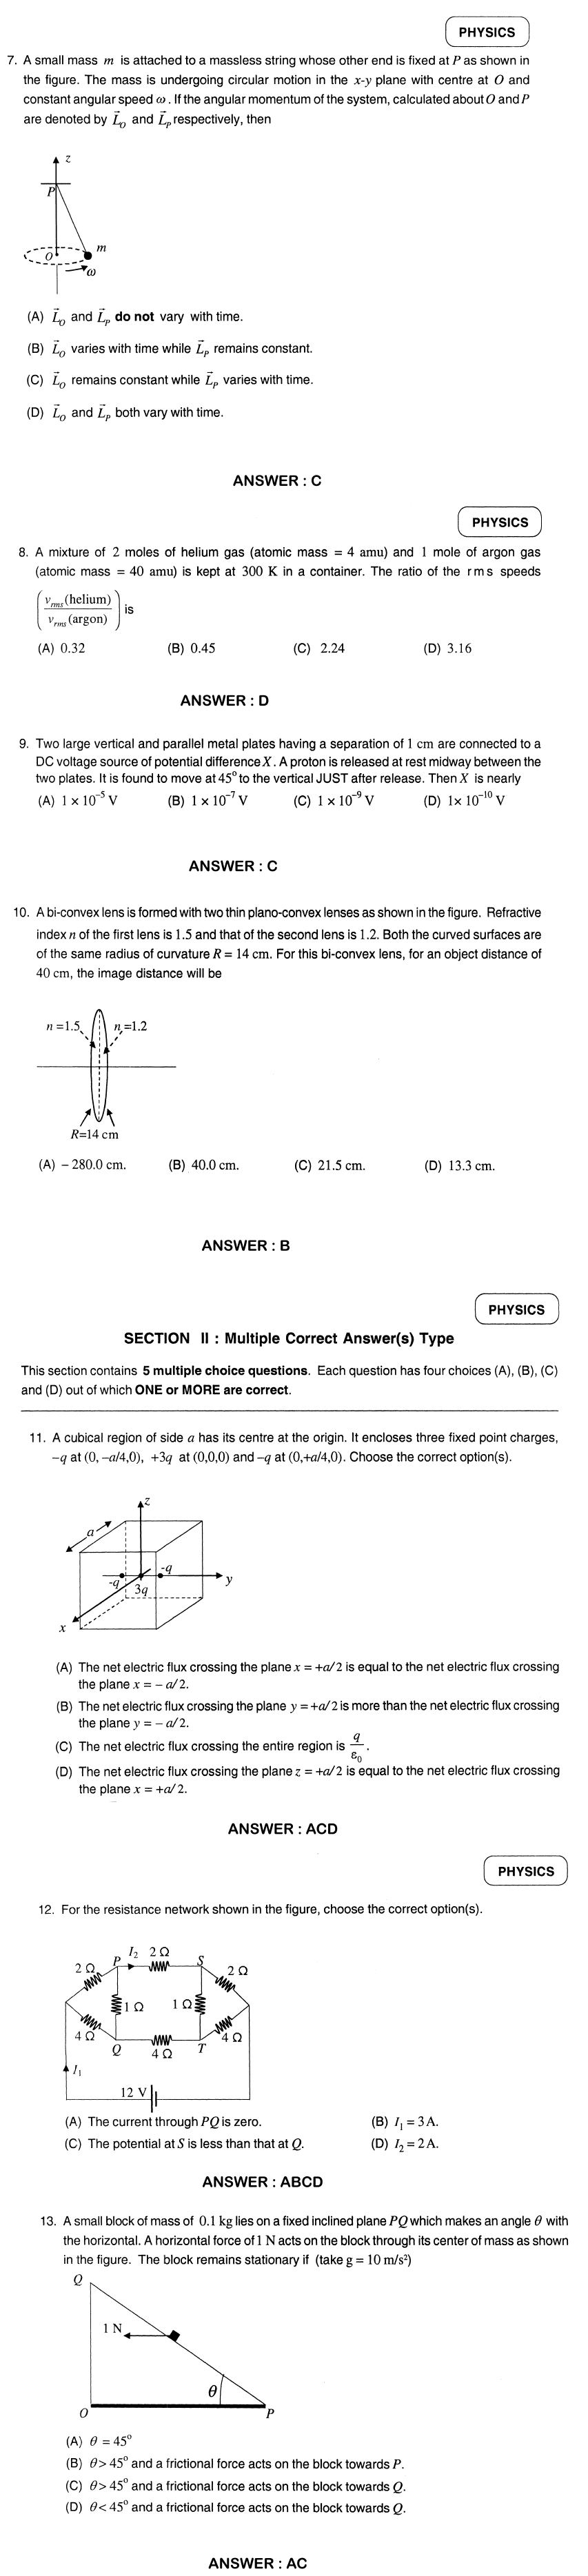 IIT JEE 2012 Question Papers & Answers   Paper 1   jee advanced  Image